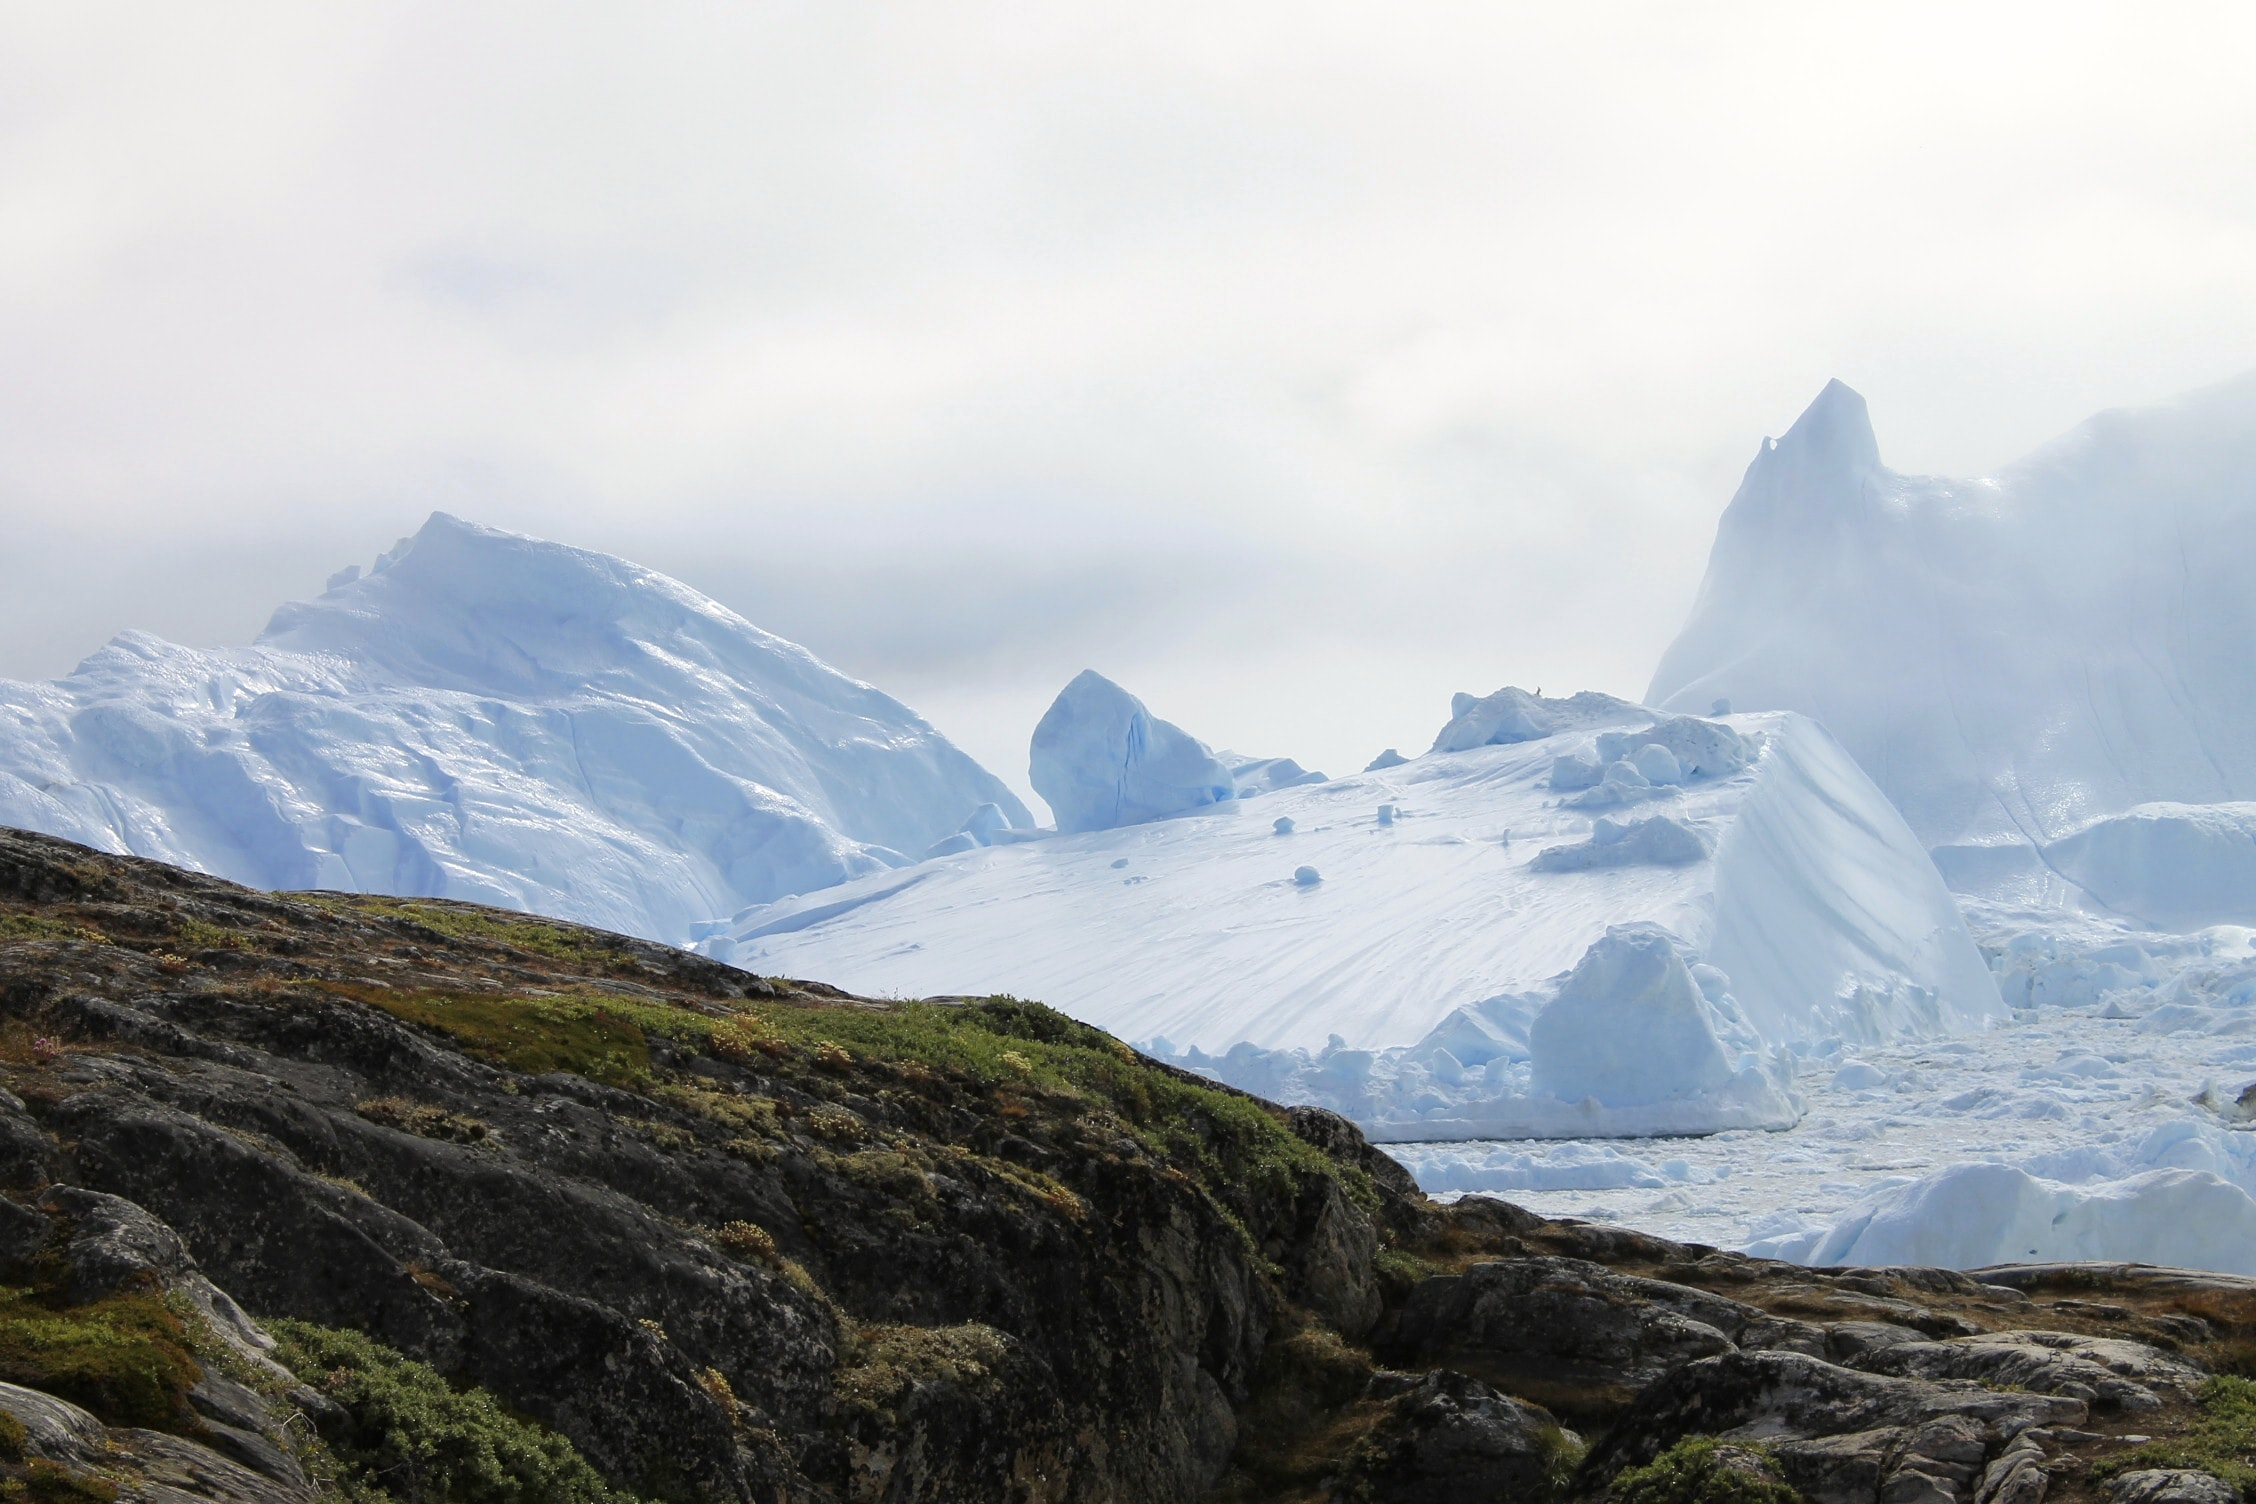 A rocky ridge against the icy glaciers of Ilulissat, Greenland